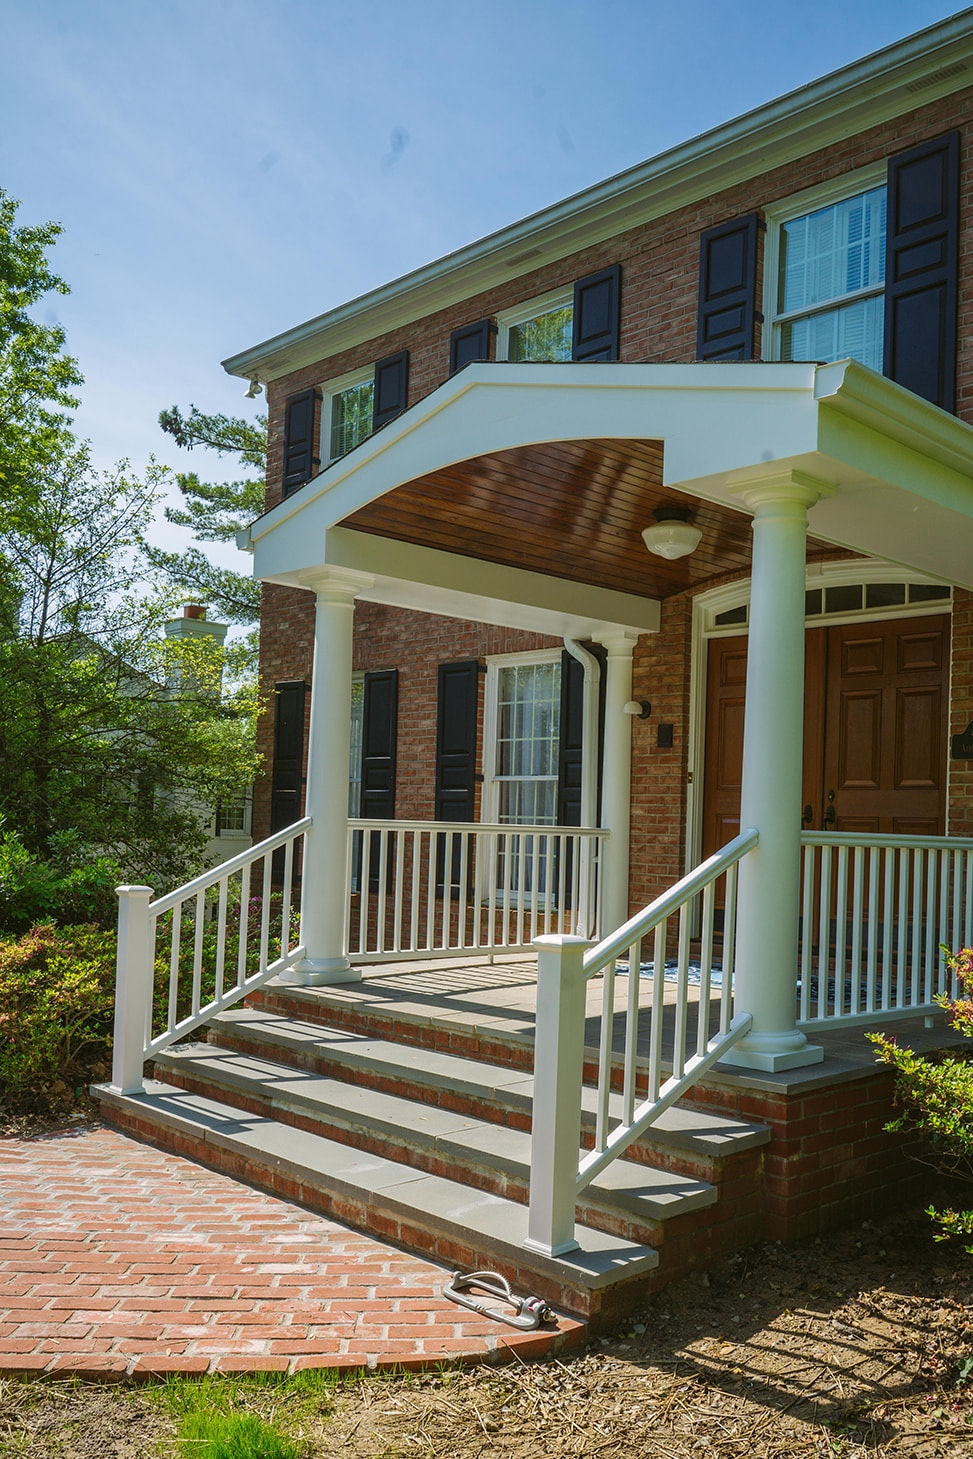 Welcome Home - First impressions are everything. And this new porch adds a stately entryway to this classic brick home. The slate covered flooring is both elegant and durable, creating quite a welcome for these proud homeowners.